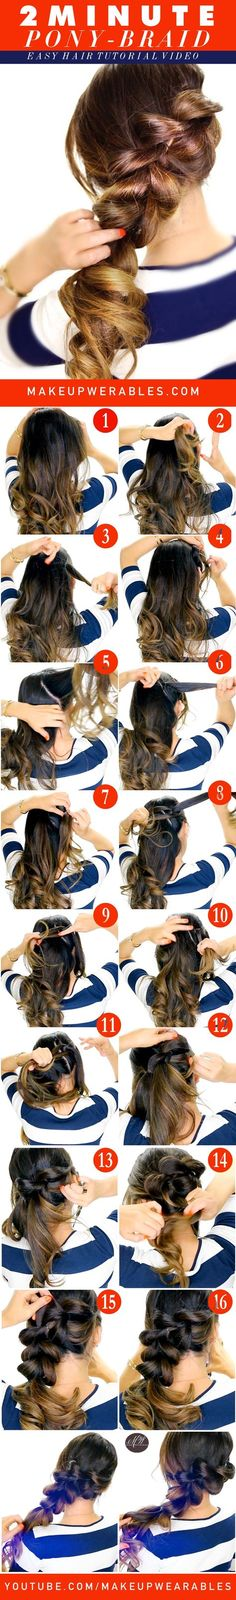 2-Minute Fancy Pony-Braid! Super Easy Hairstyles for summer